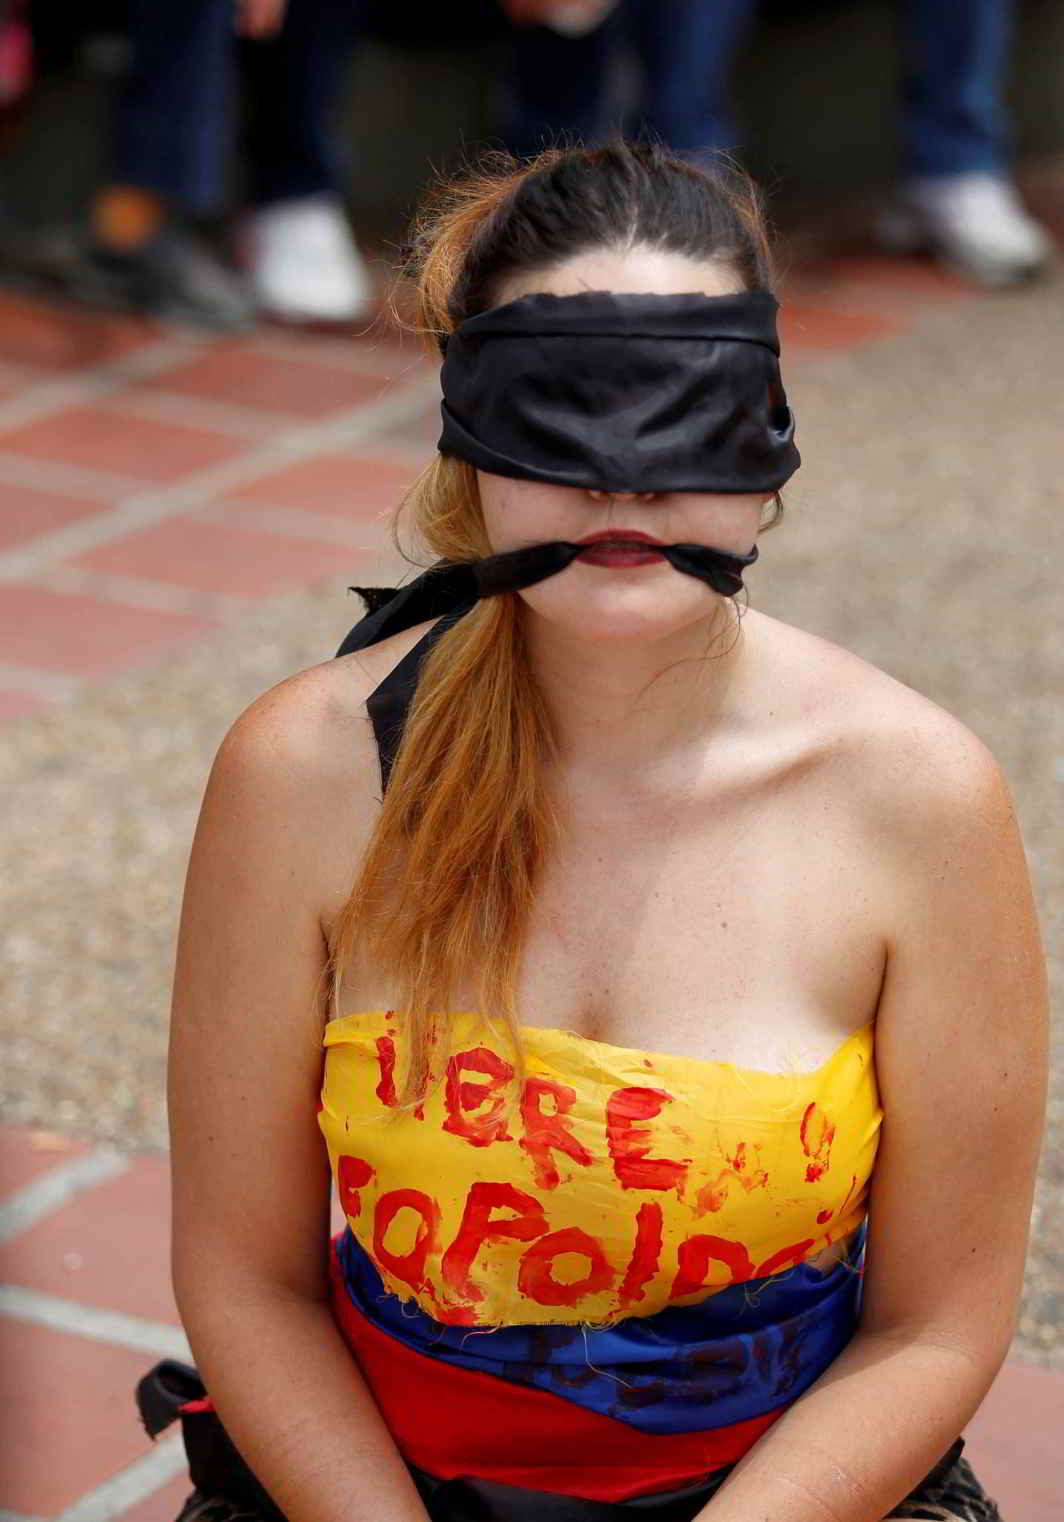 INJUSTICE IS BLIND, TOO: An opposition supporter participates in a rally against President Nicolas Maduro in Caracas, Venezuela, Reuters/UNI